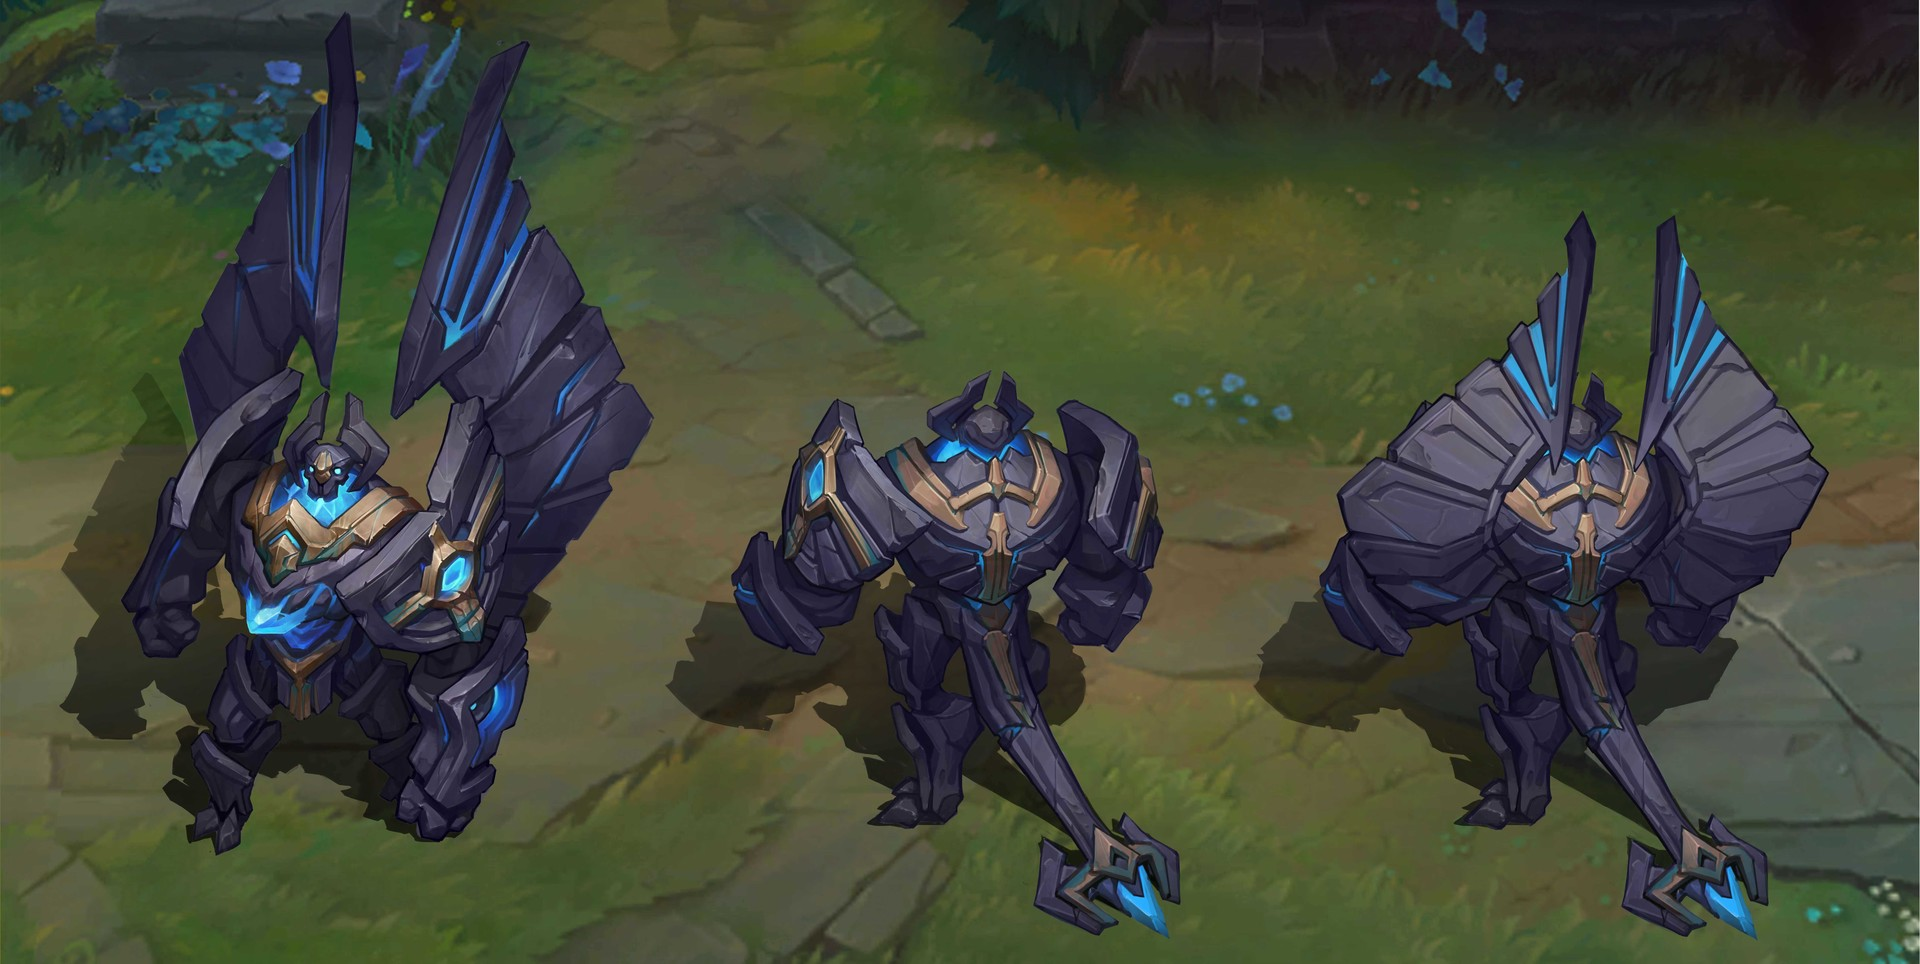 ArtStation - League of Legends-Enchanted Galio skin ... - photo#41